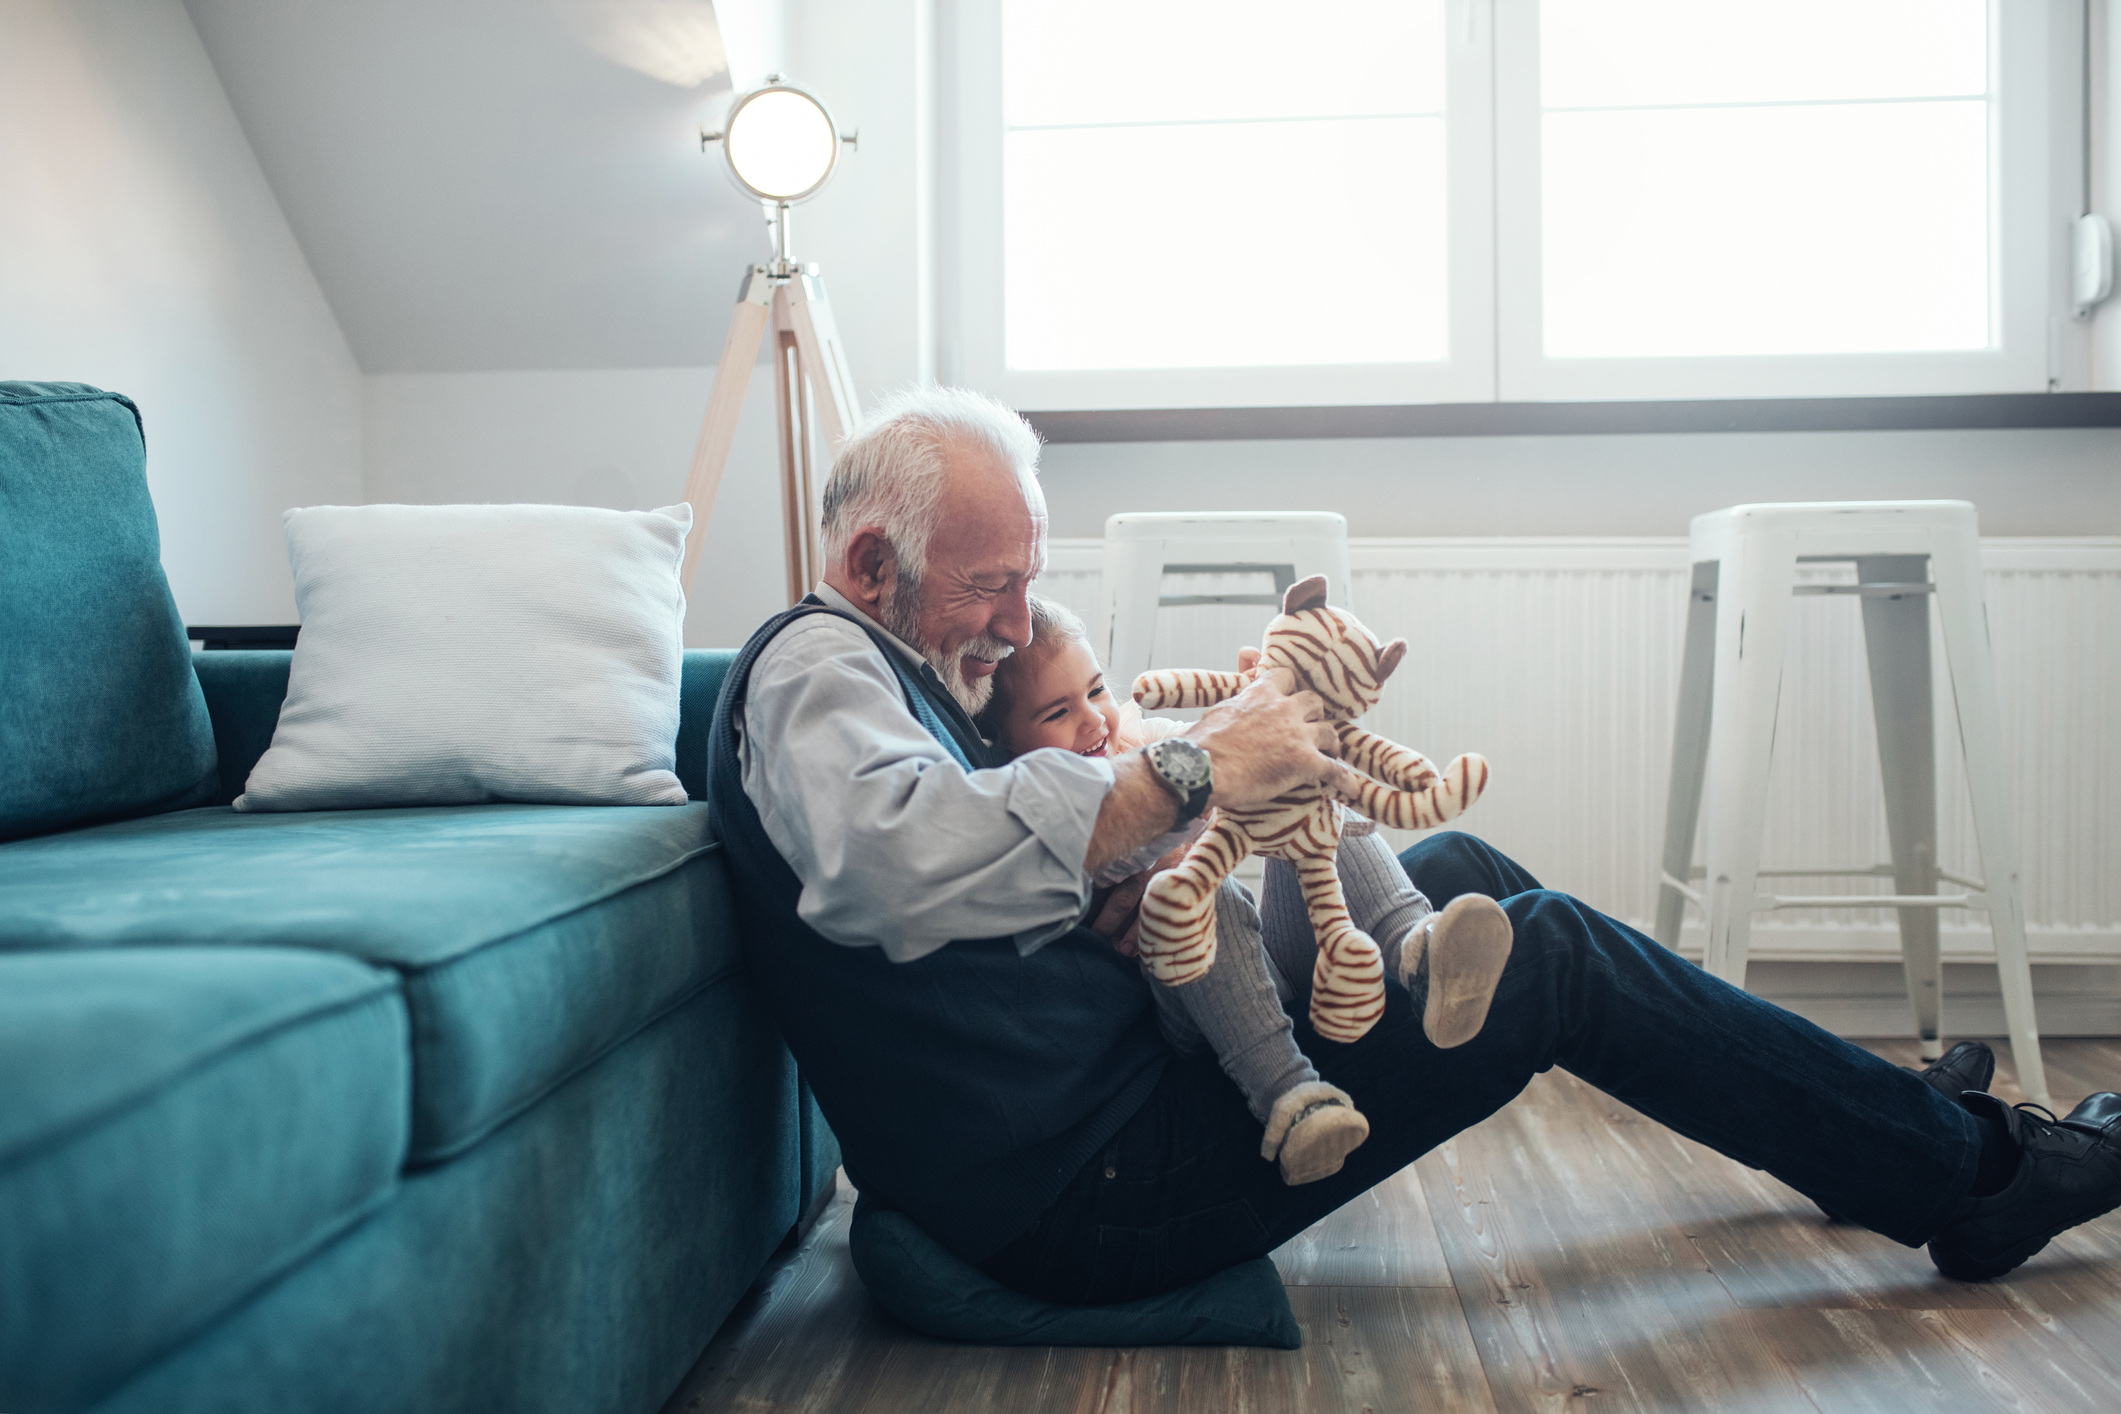 The 'Sandwich Generation' has arrived. Today's parents manage work while caring for their children and aging parents. -